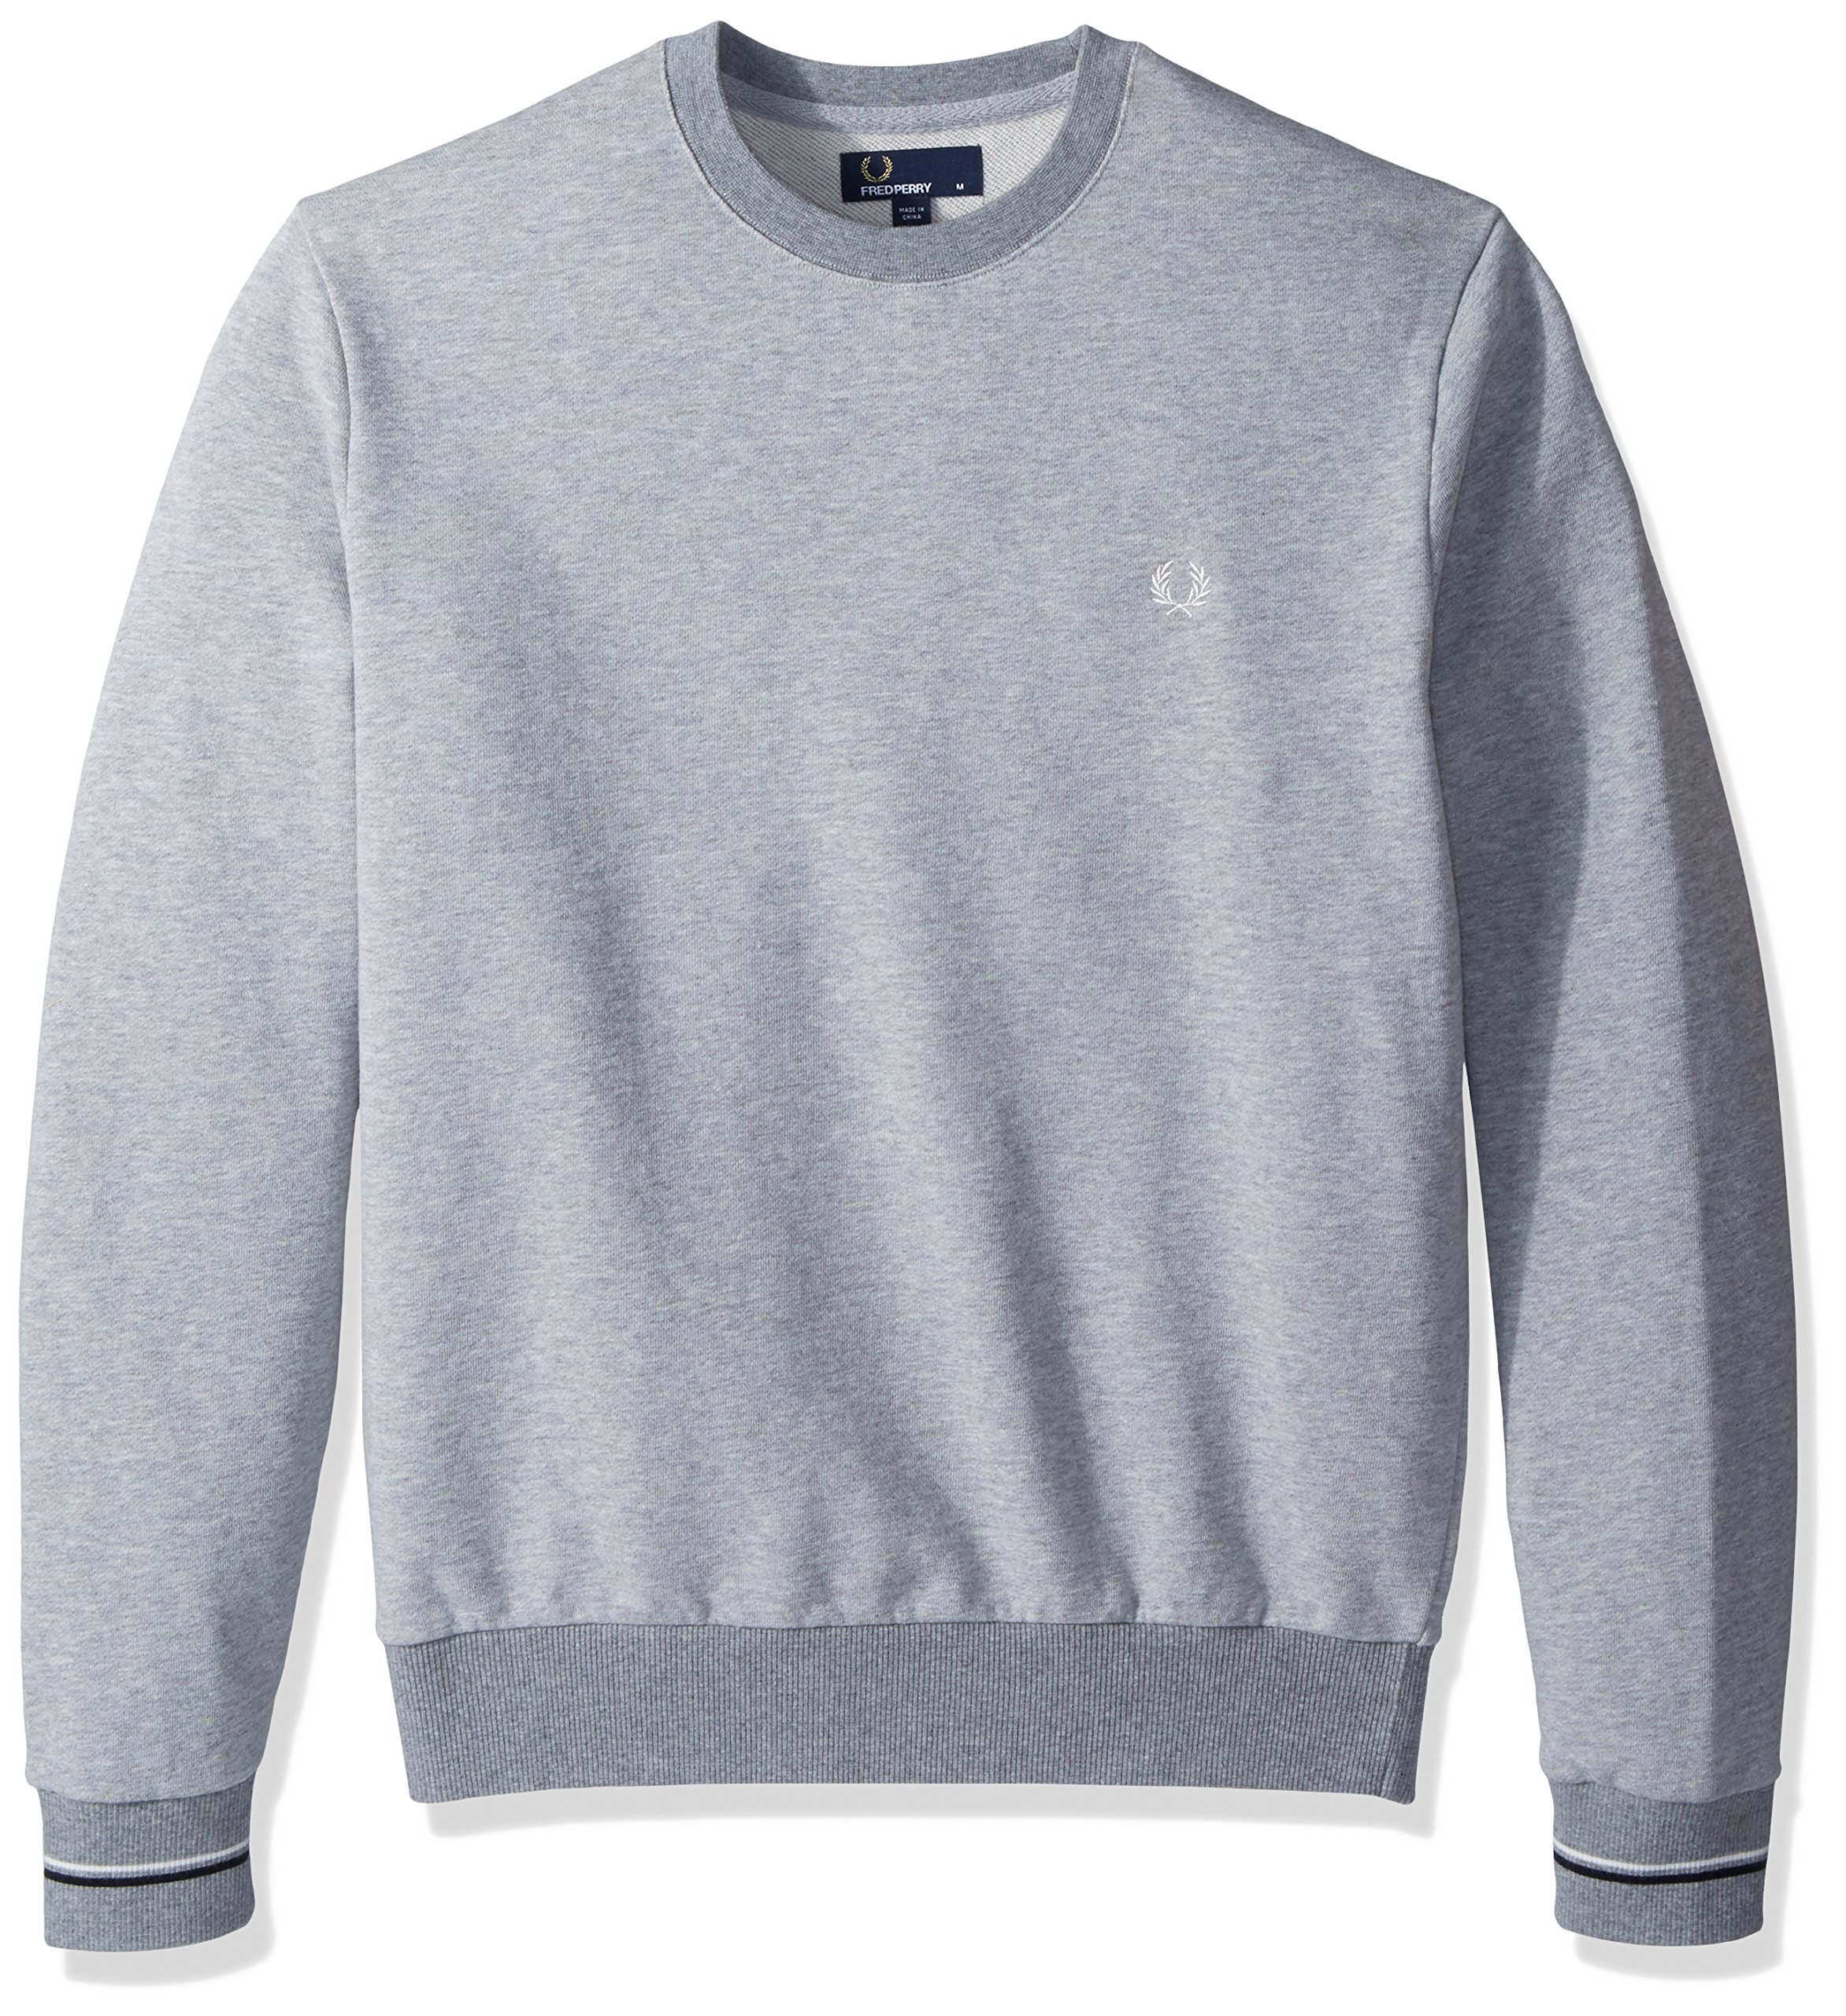 Fred Perry Men's Crew Neck Sweat, Vintage MARL Grey, X-Large